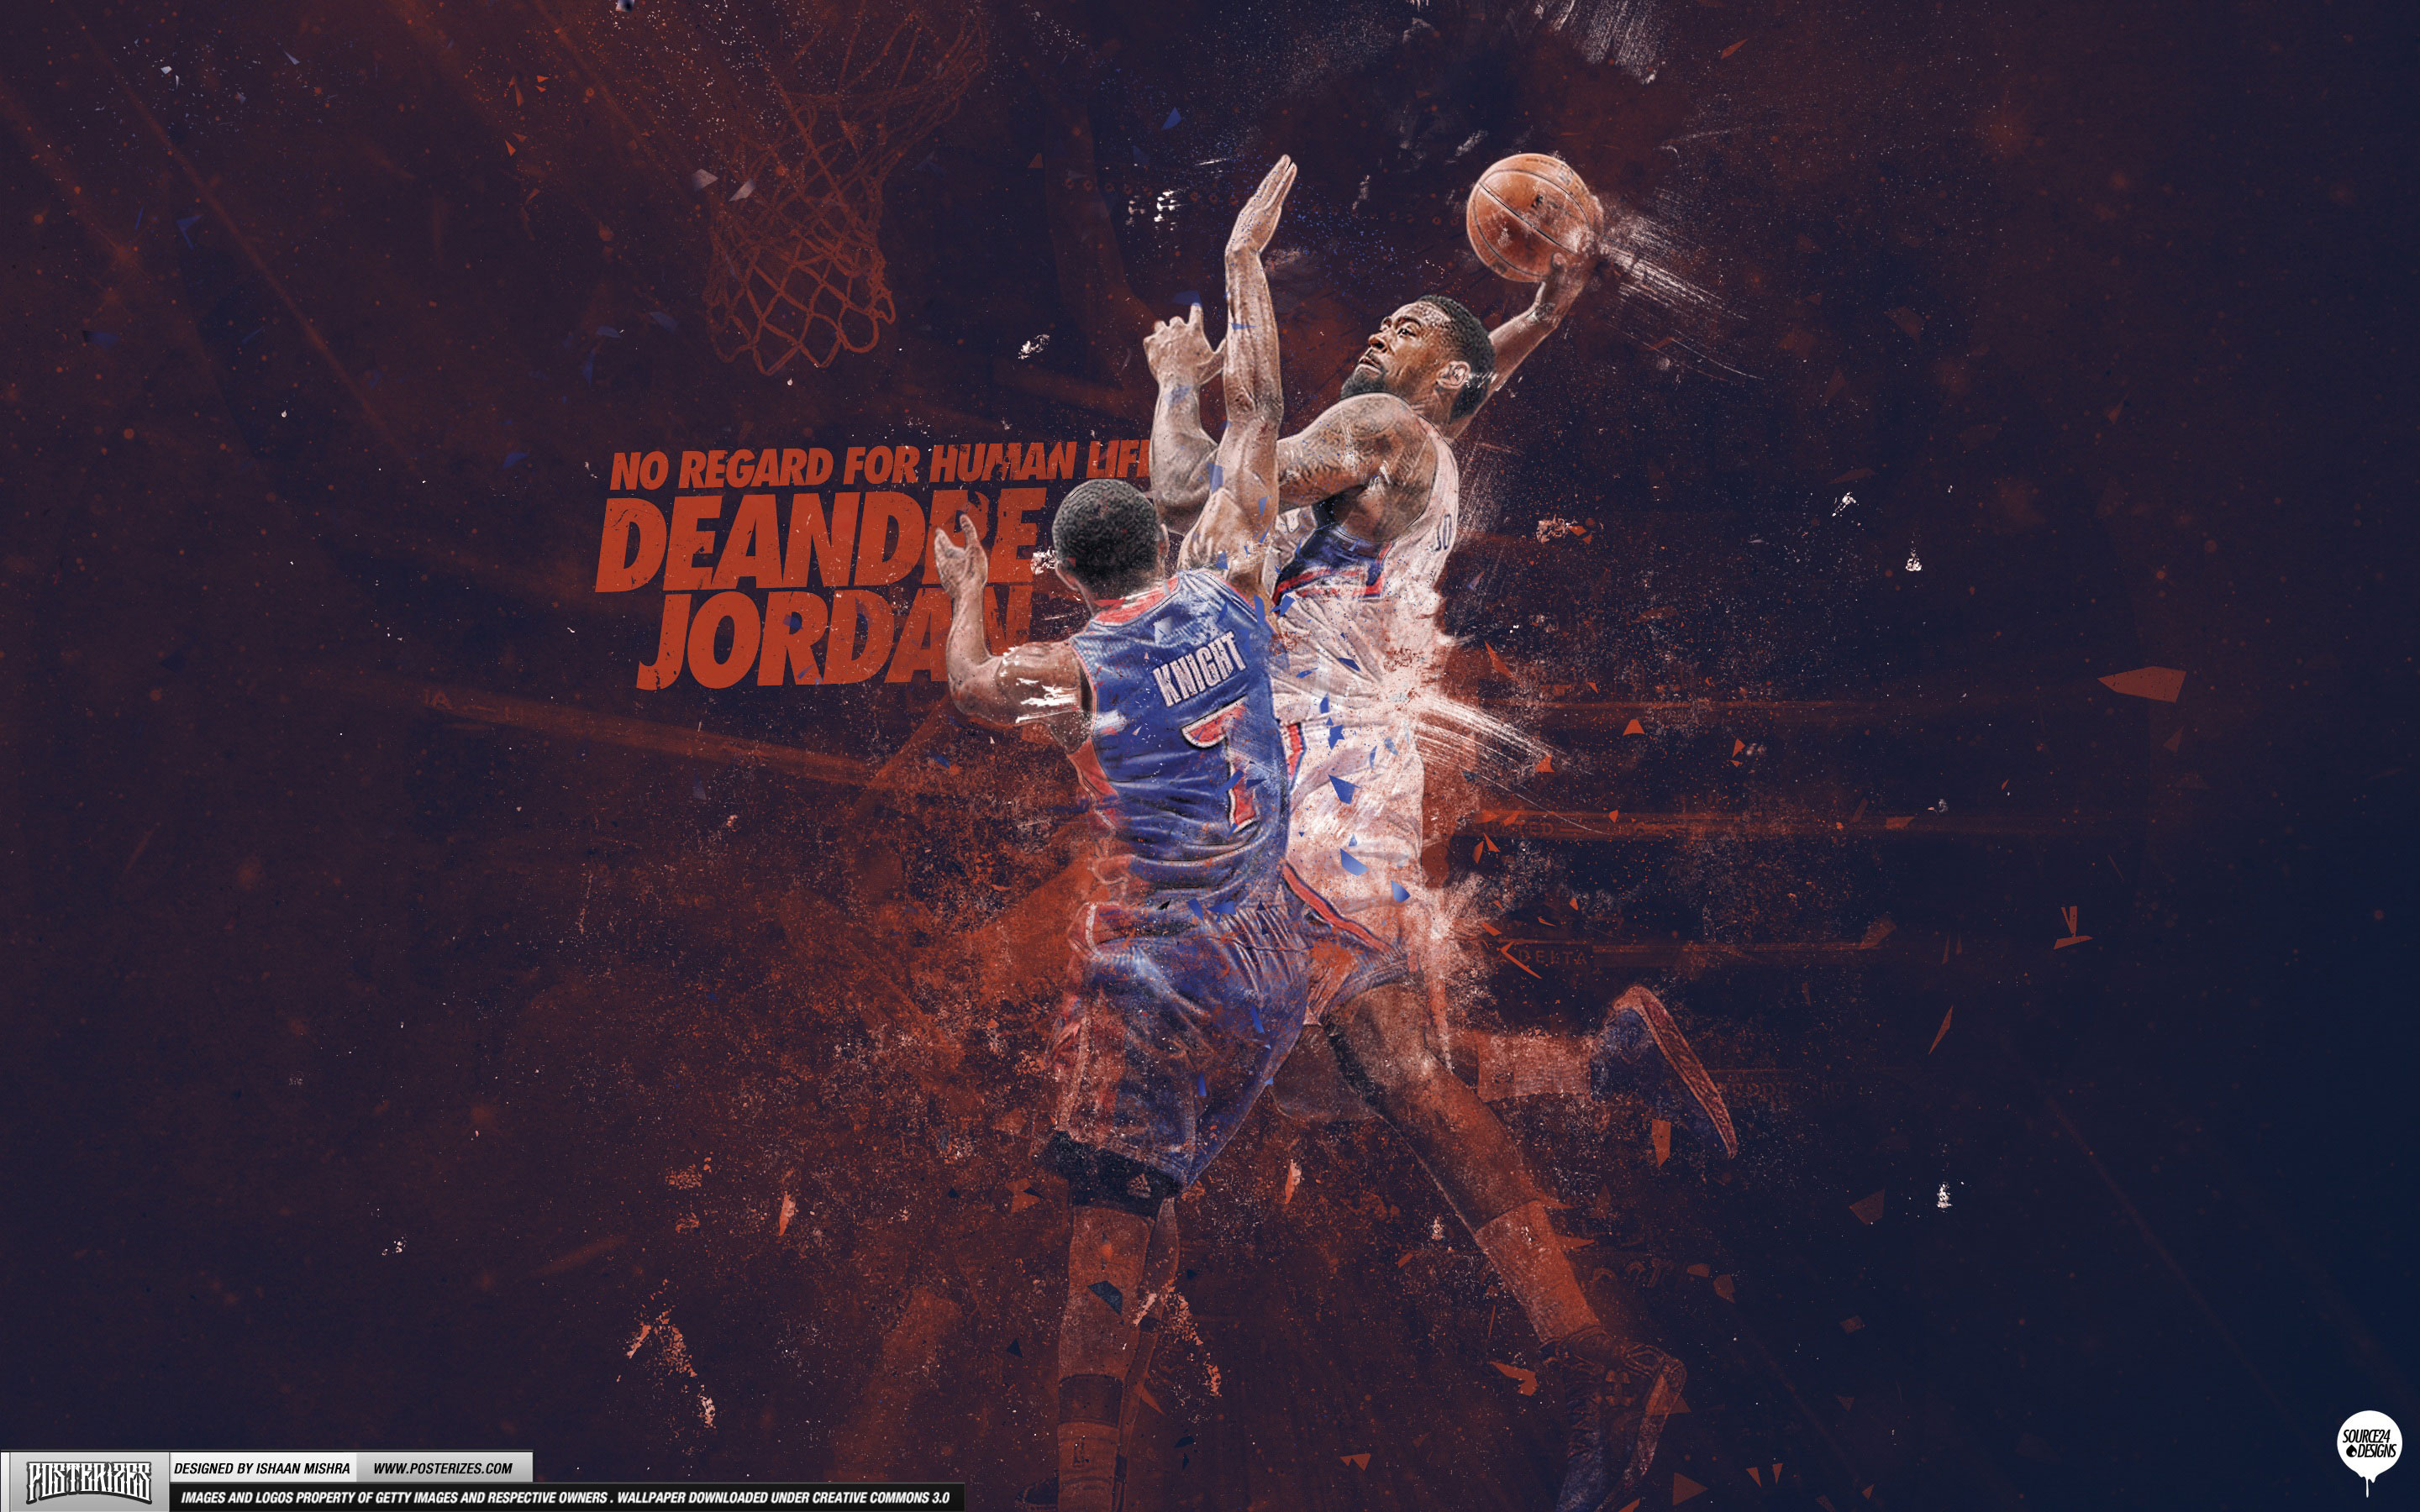 DeAndre Jordan over Brandon Knight 2013 28801800 Wallpaper 2880x1800